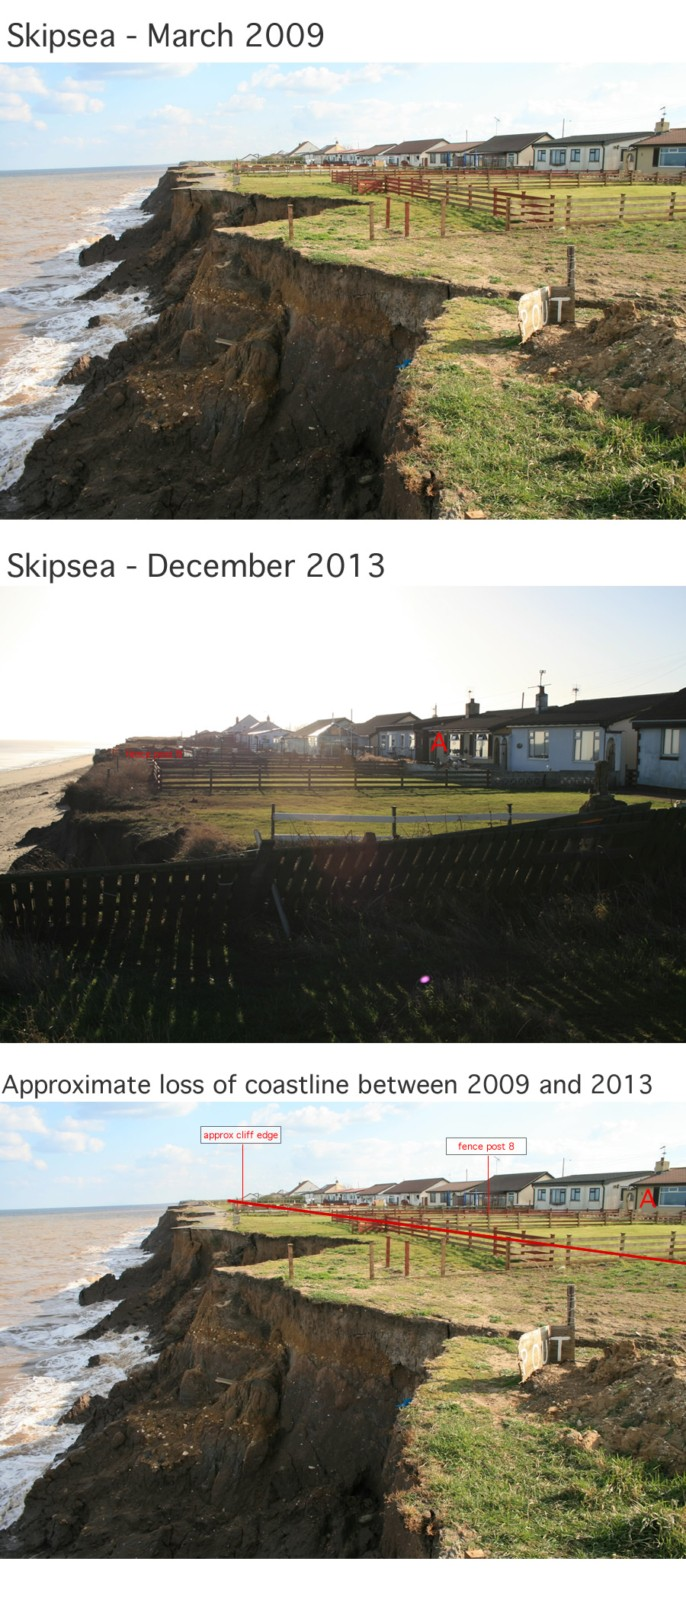 Changes in erosion at Skipsea